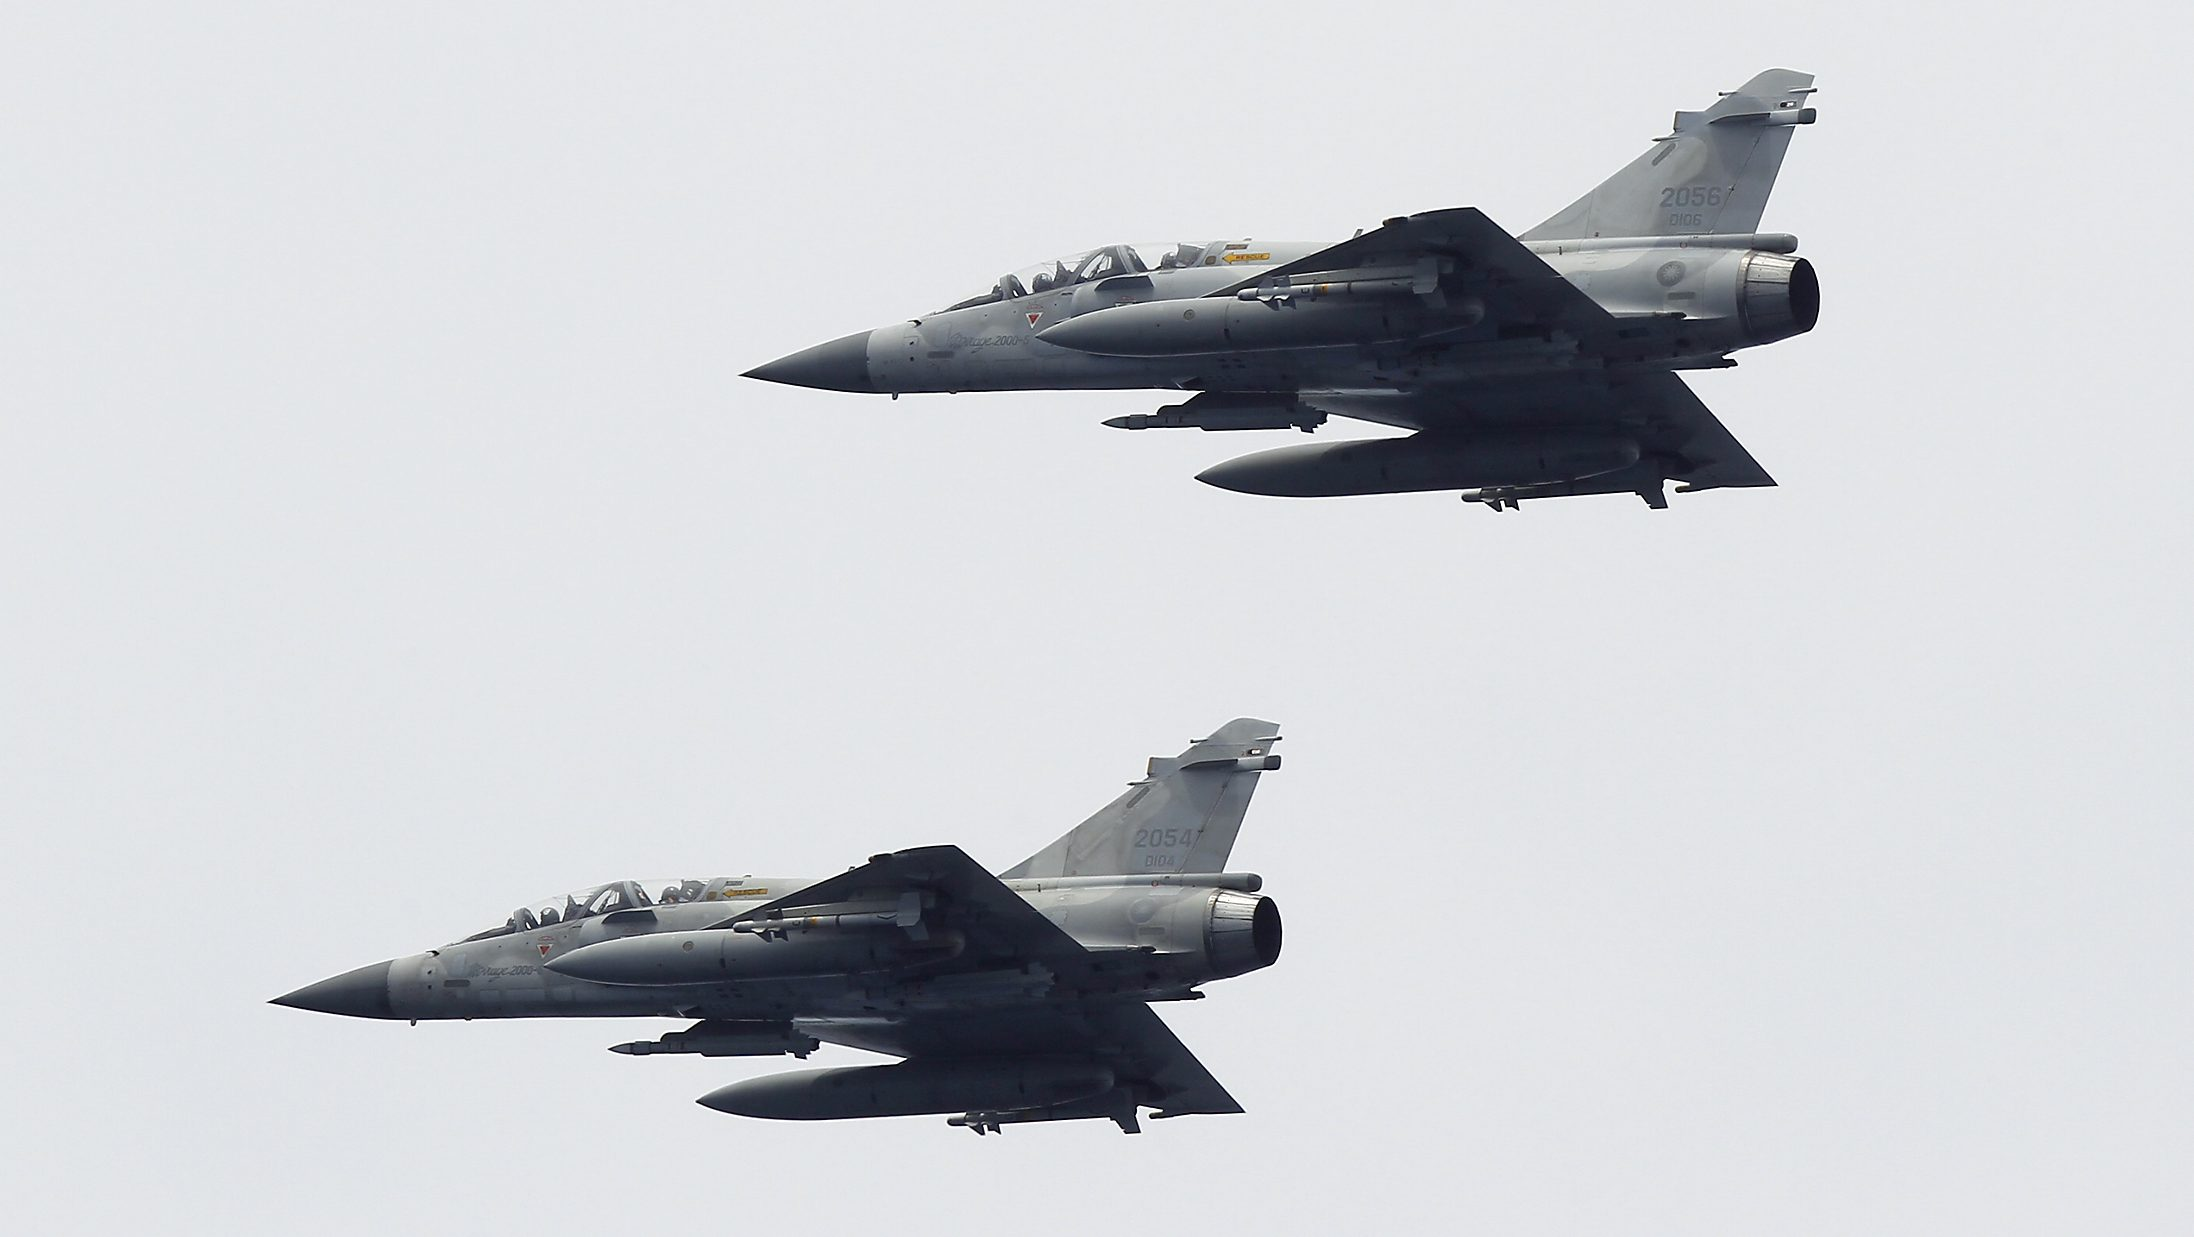 Taiwan Air Force Mirage-2000 fighter jets take part in a joint military drill outside a navy base in Kaohsiung port